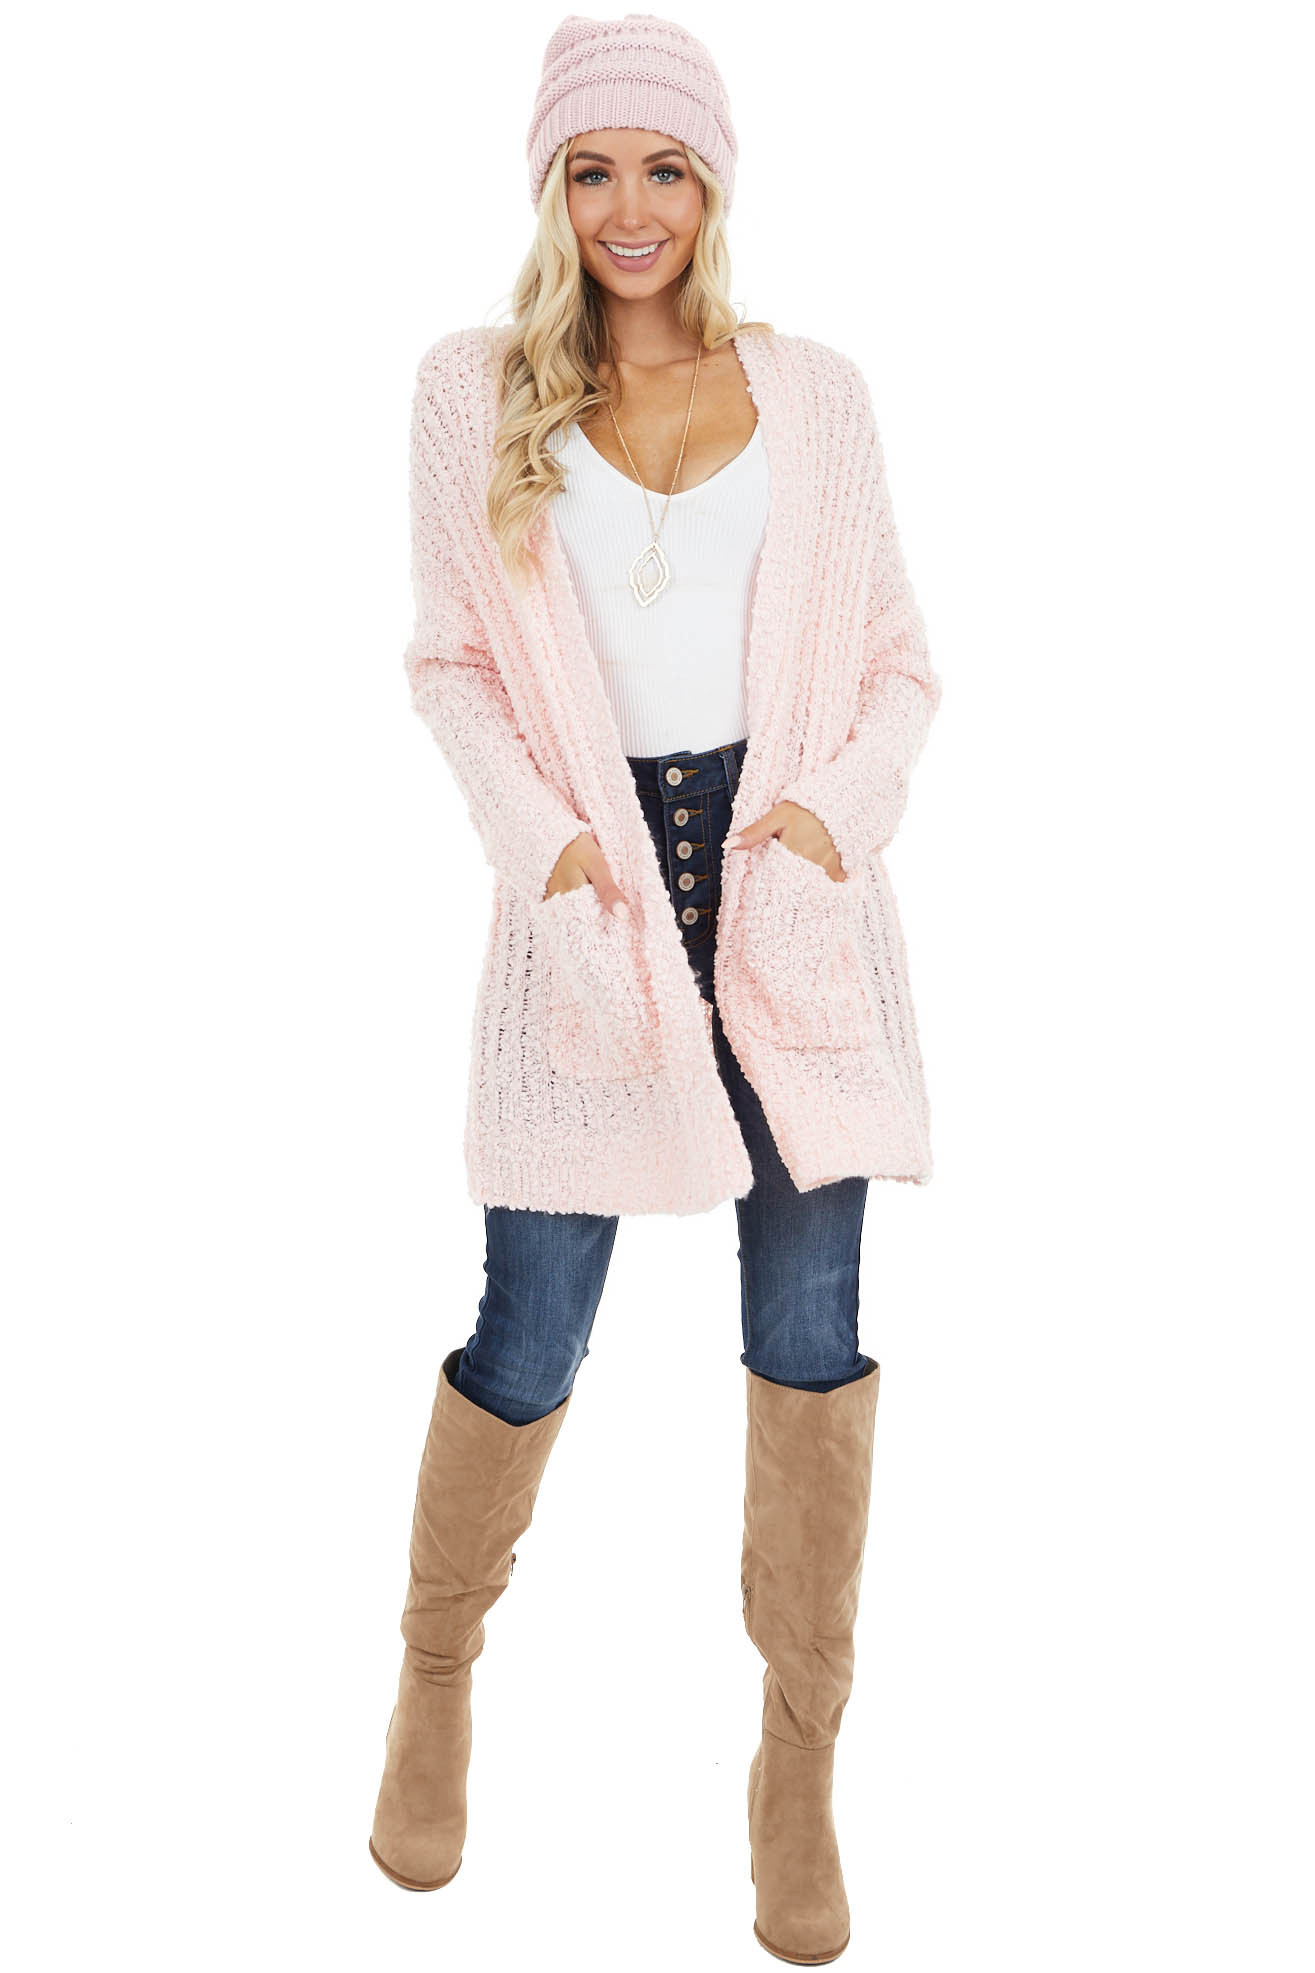 Blush Popcorn Knit Open Front Cardigan with Pockets